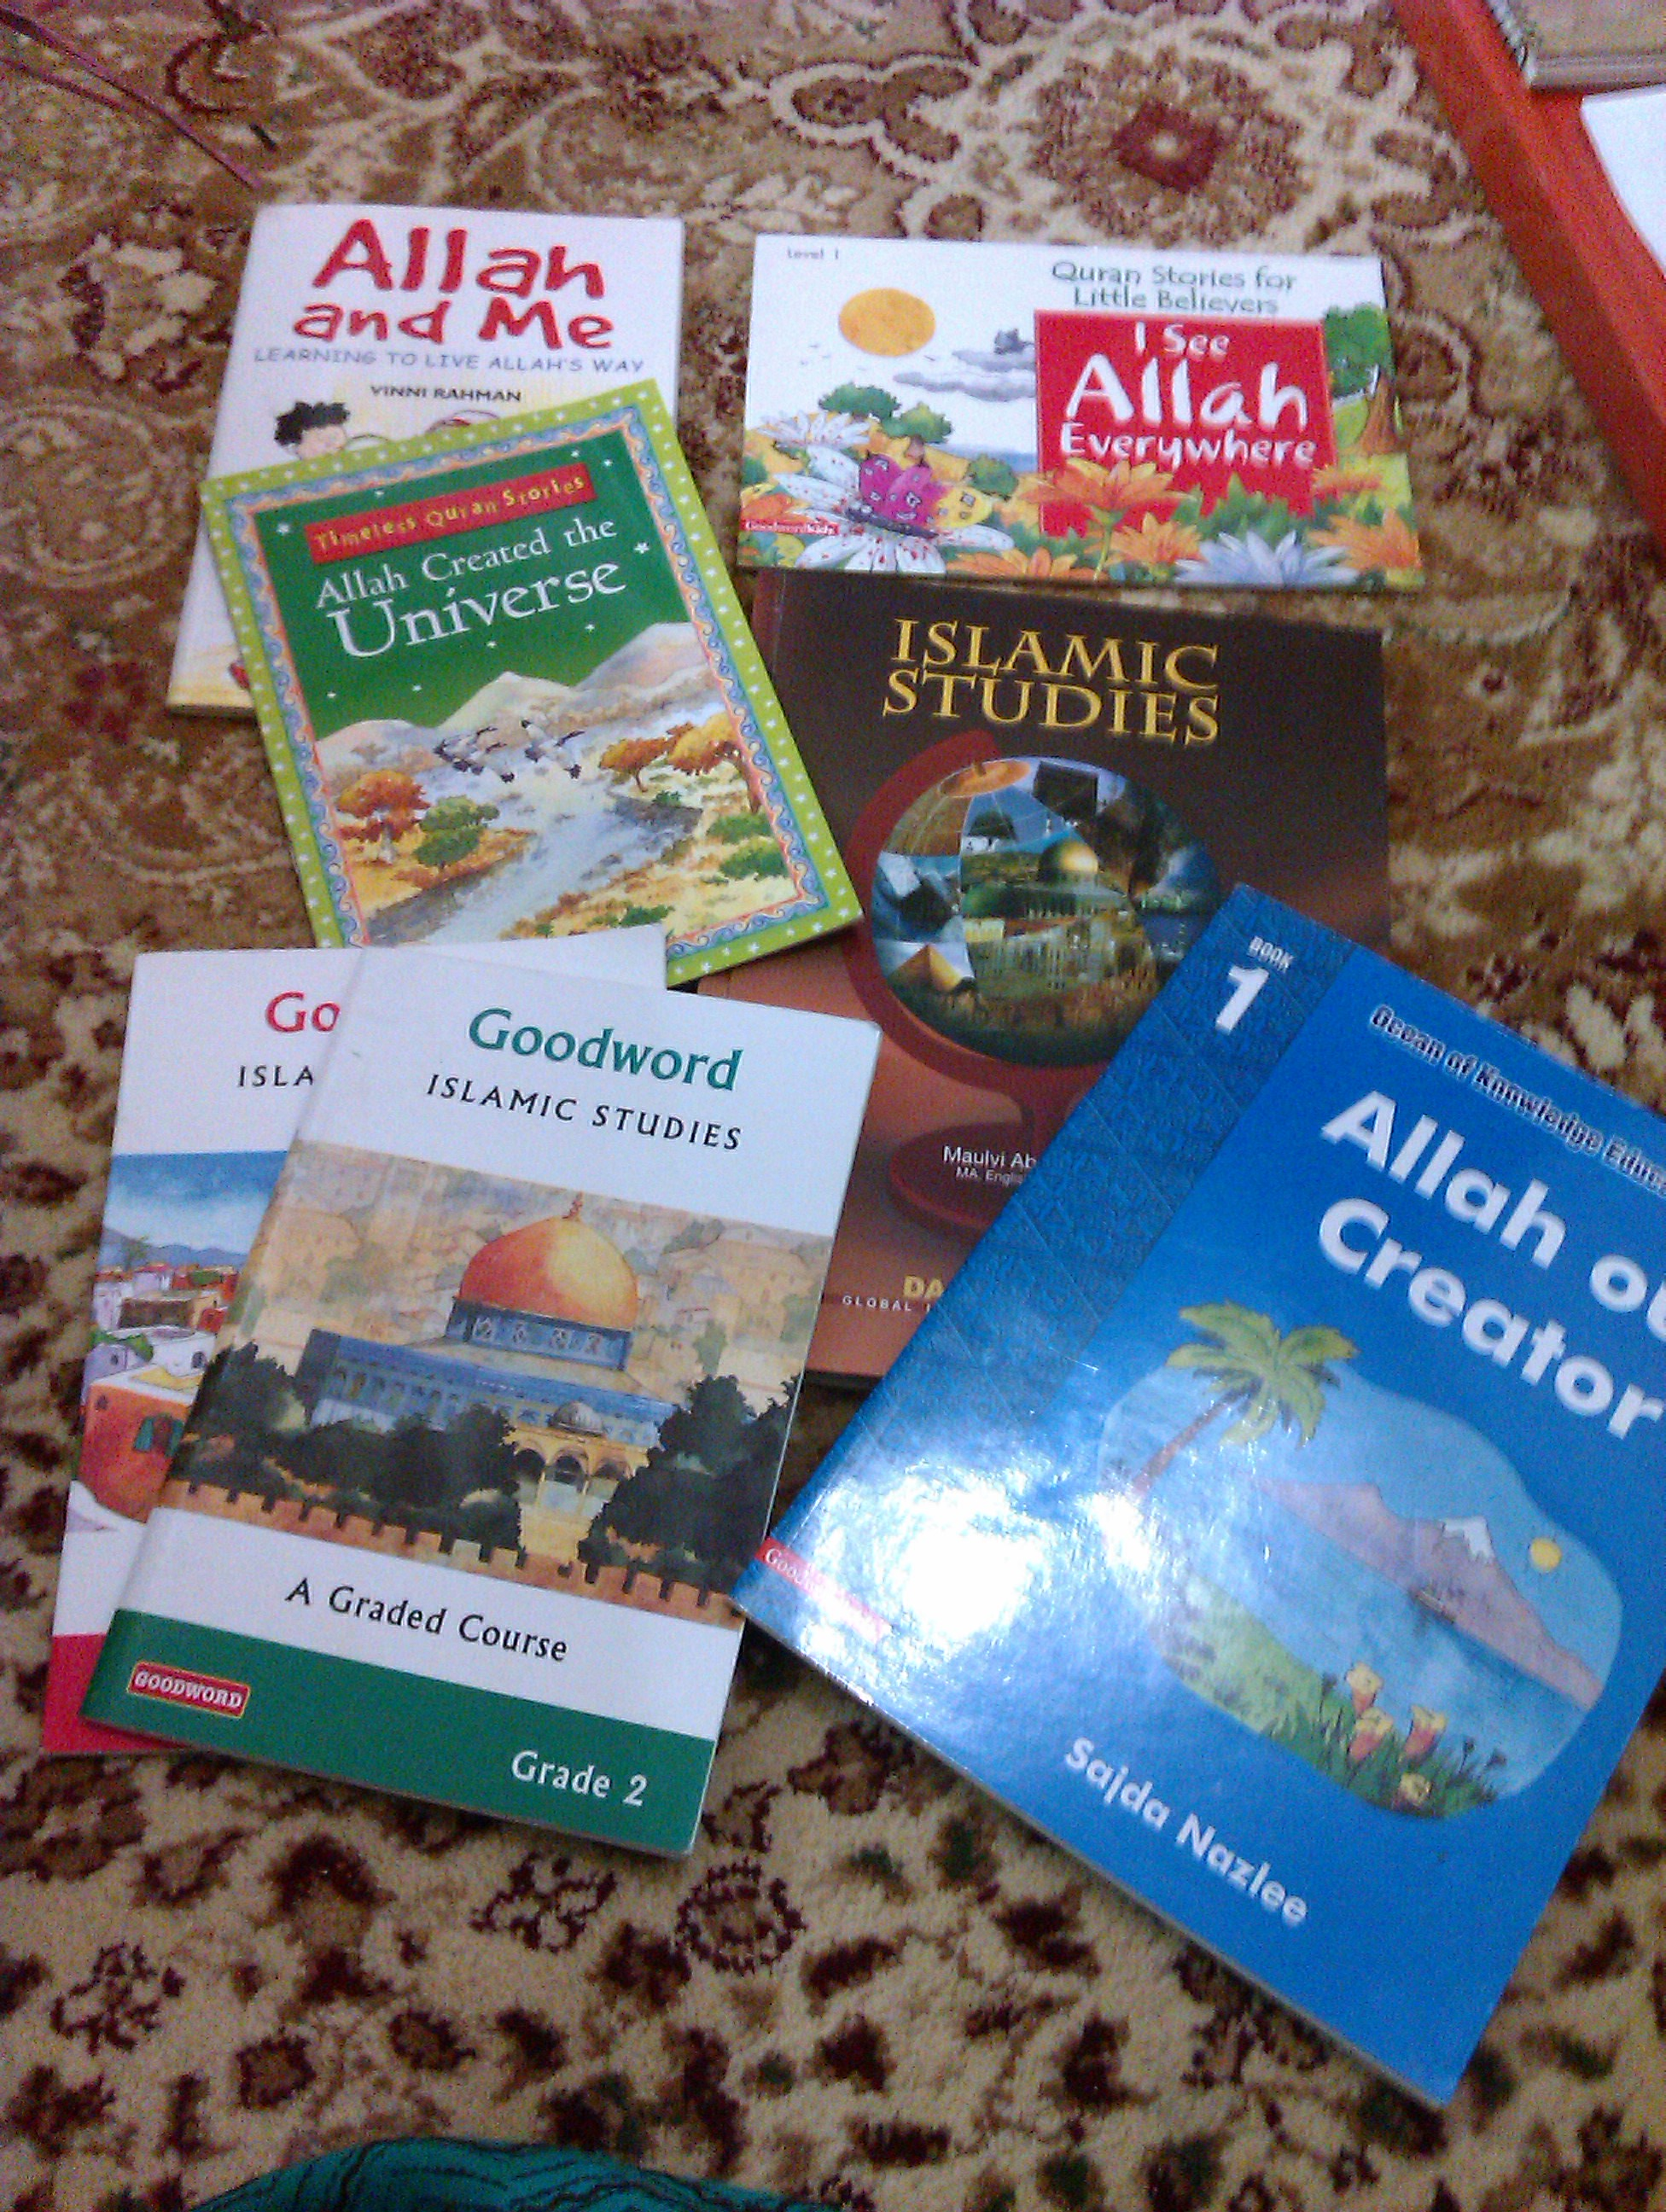 Stories from the Quran for 3 -5 year olds – gLiMpSes